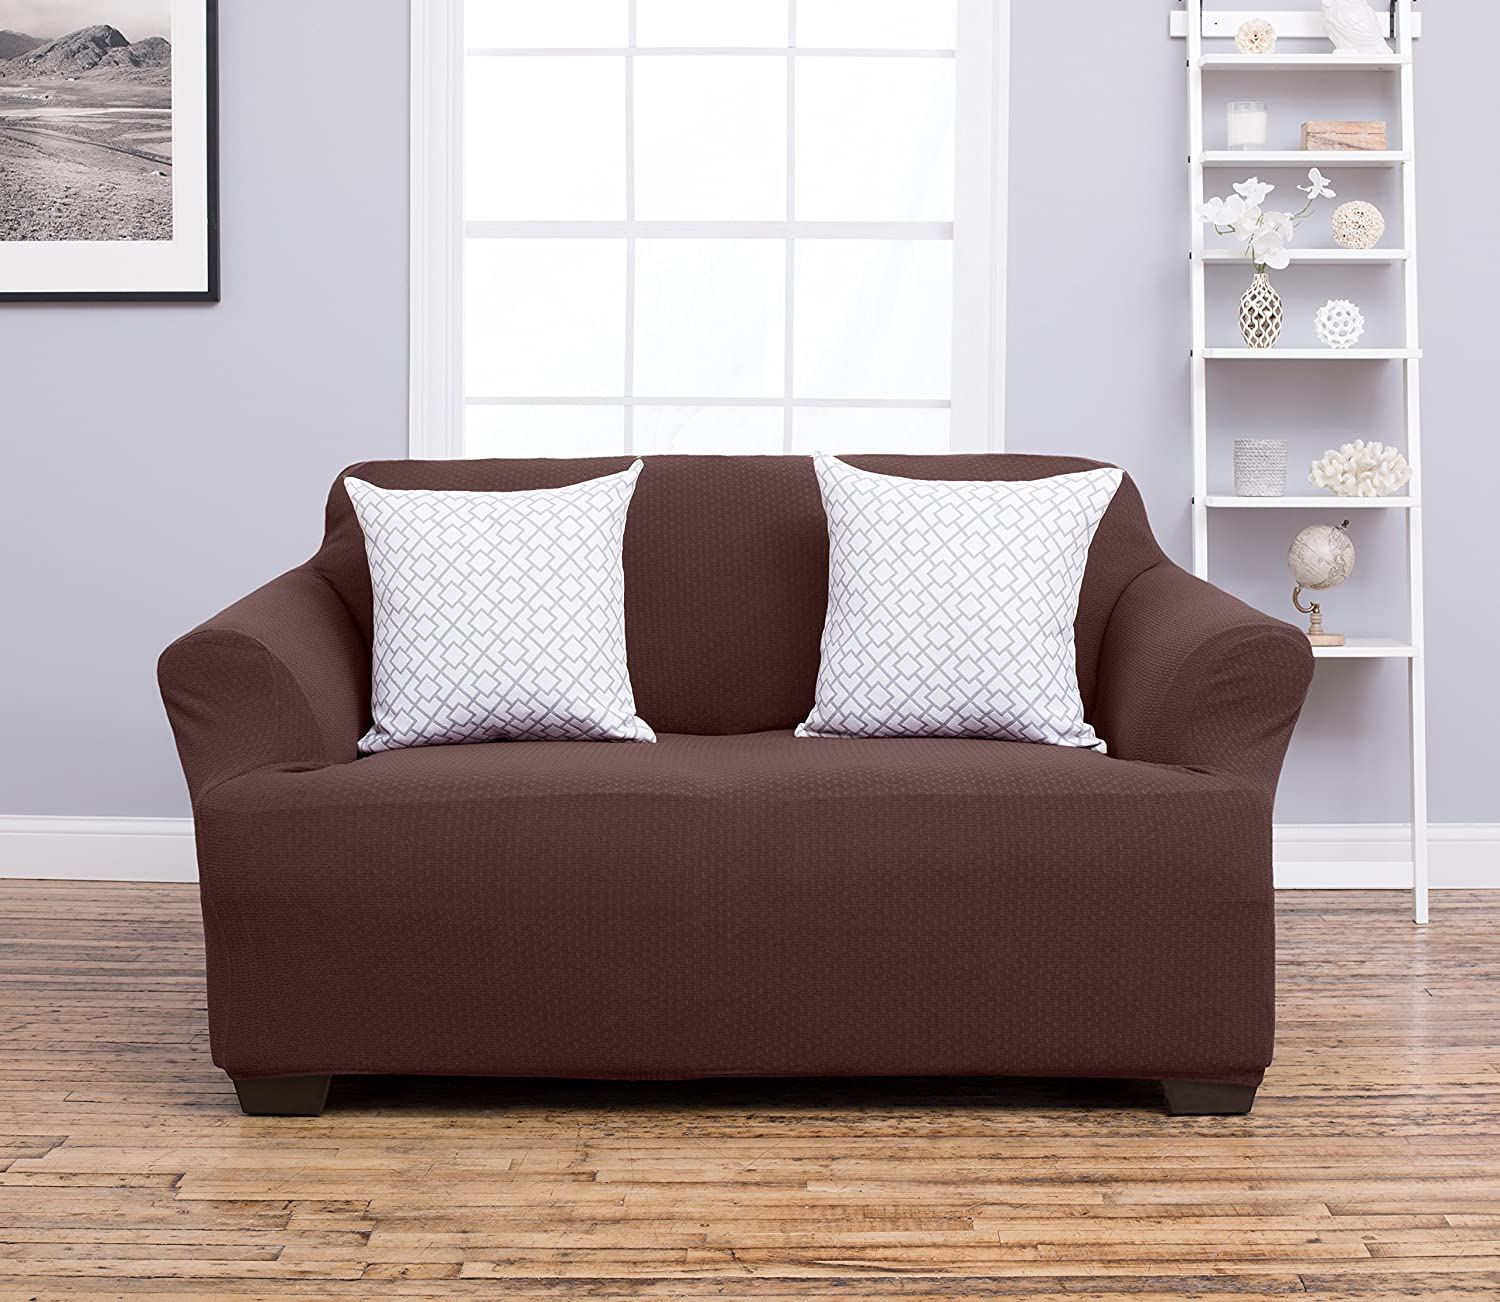 Amazon Amalio Collection Deluxe Strapless Slipcover Form Fit